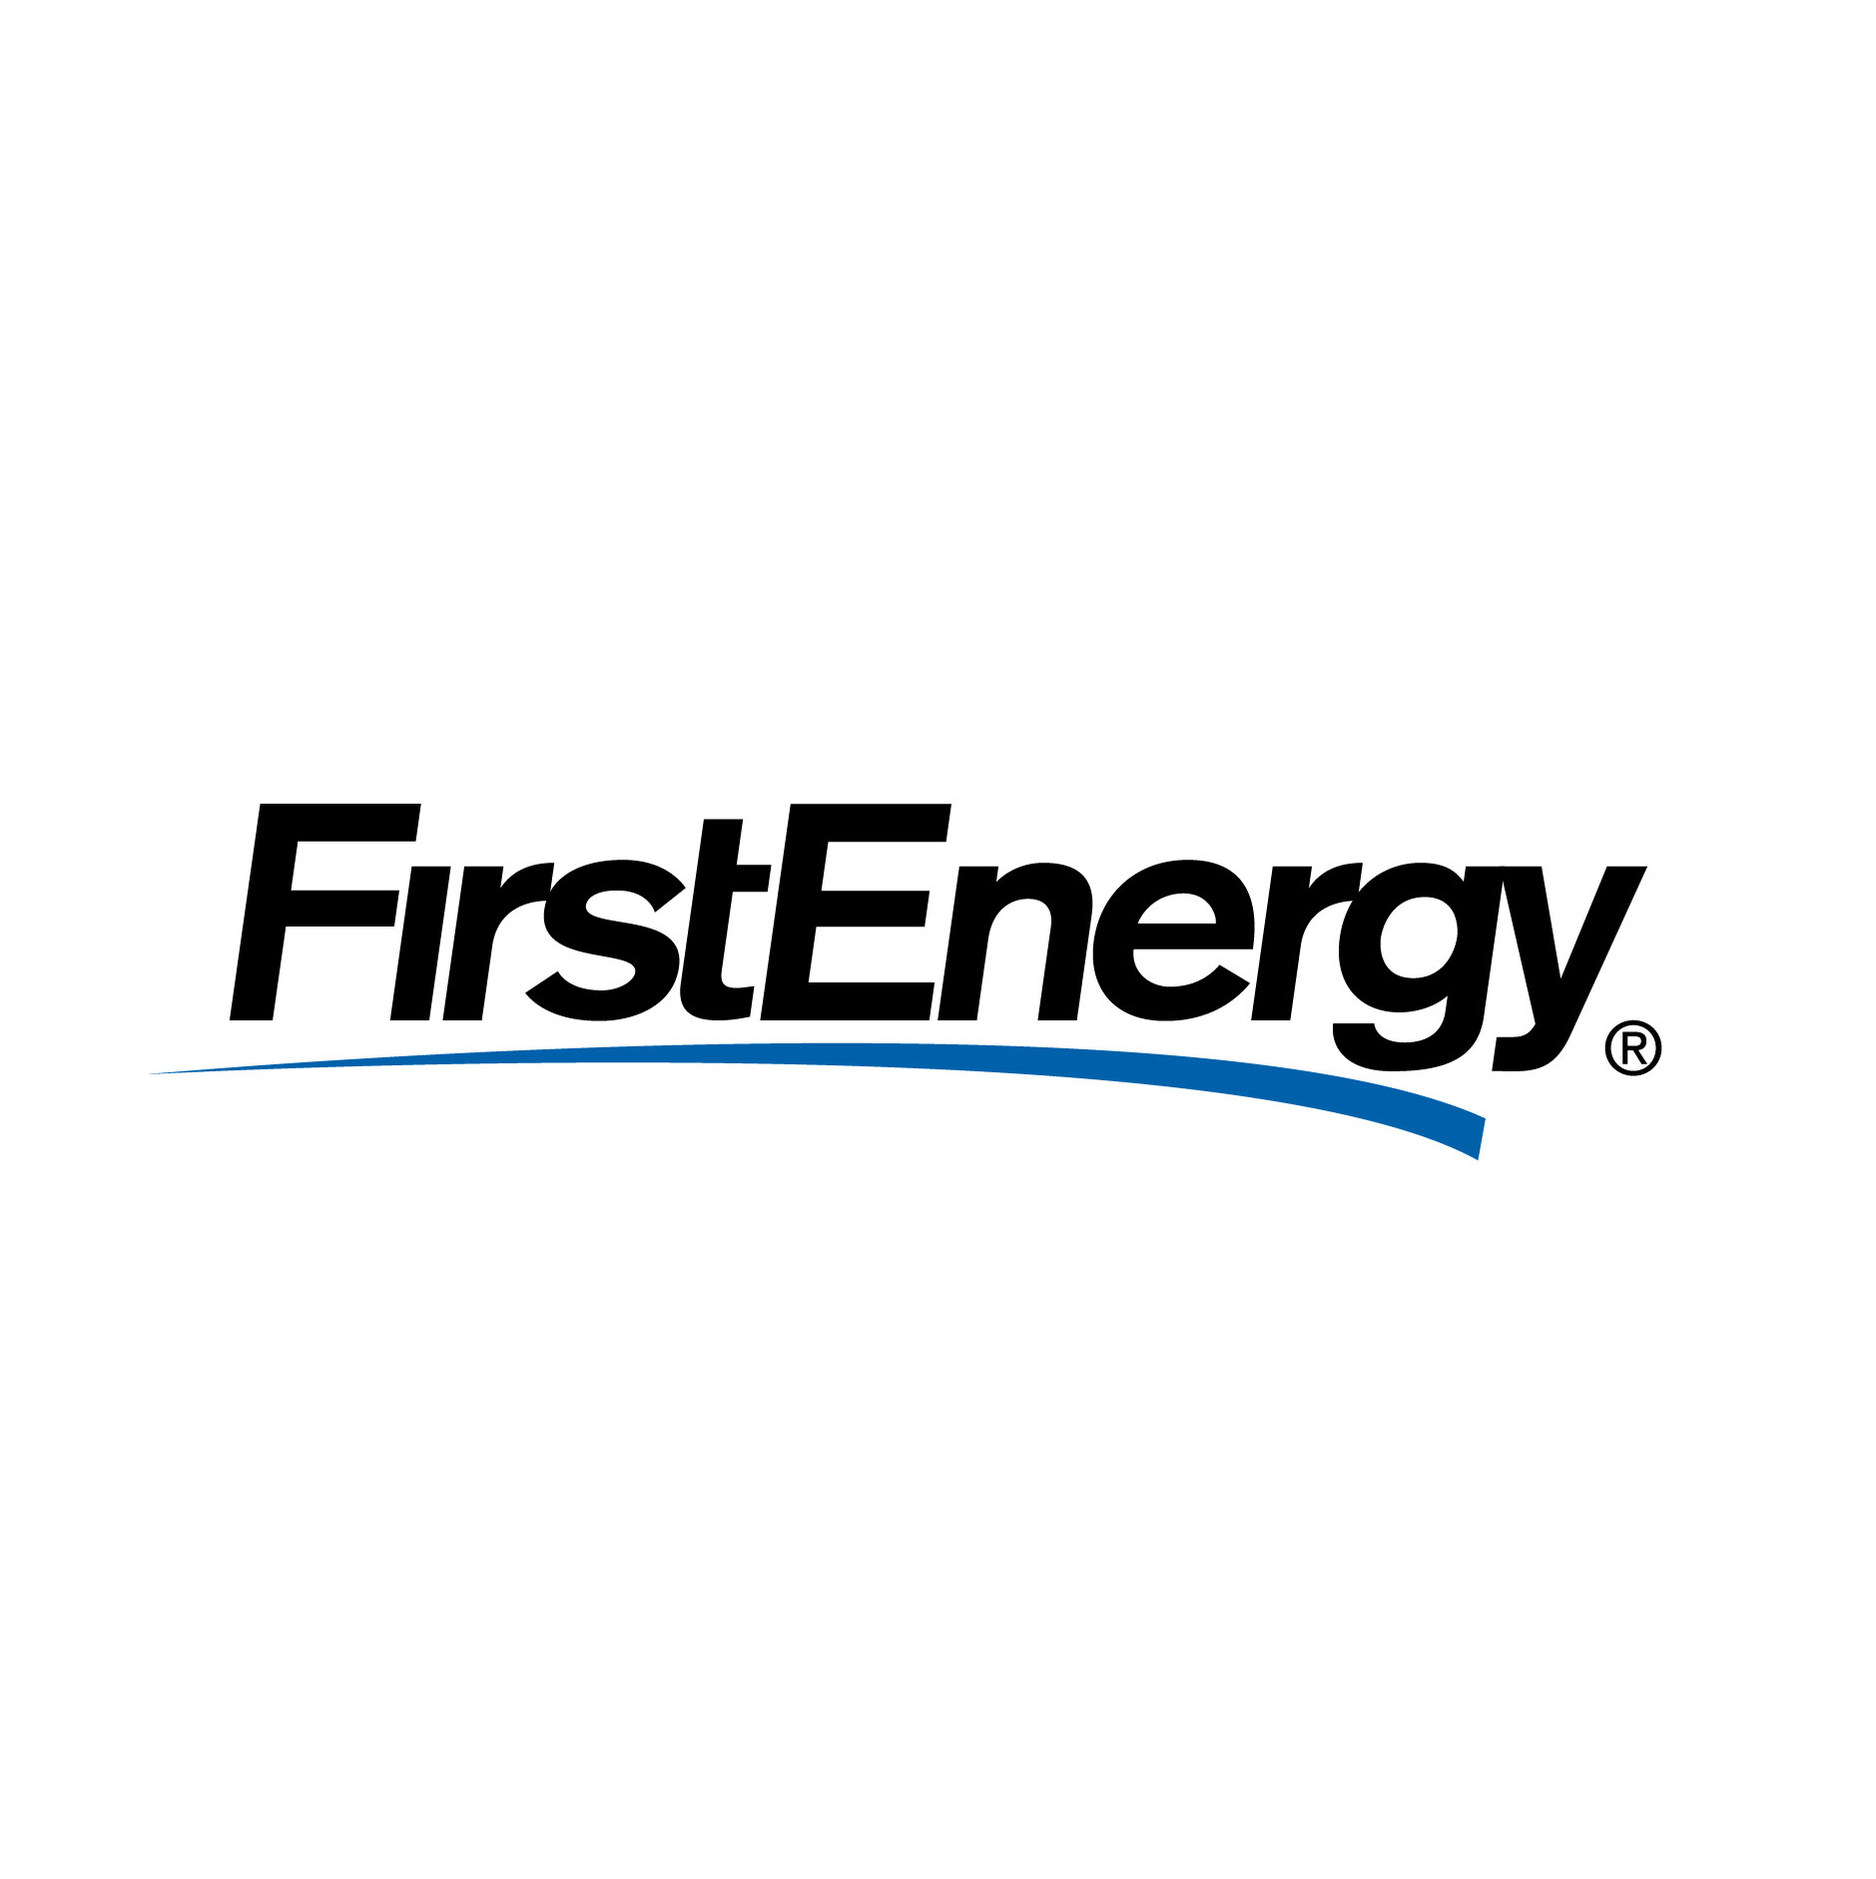 FirstEnergy Provides Financial Outlook, Information for.